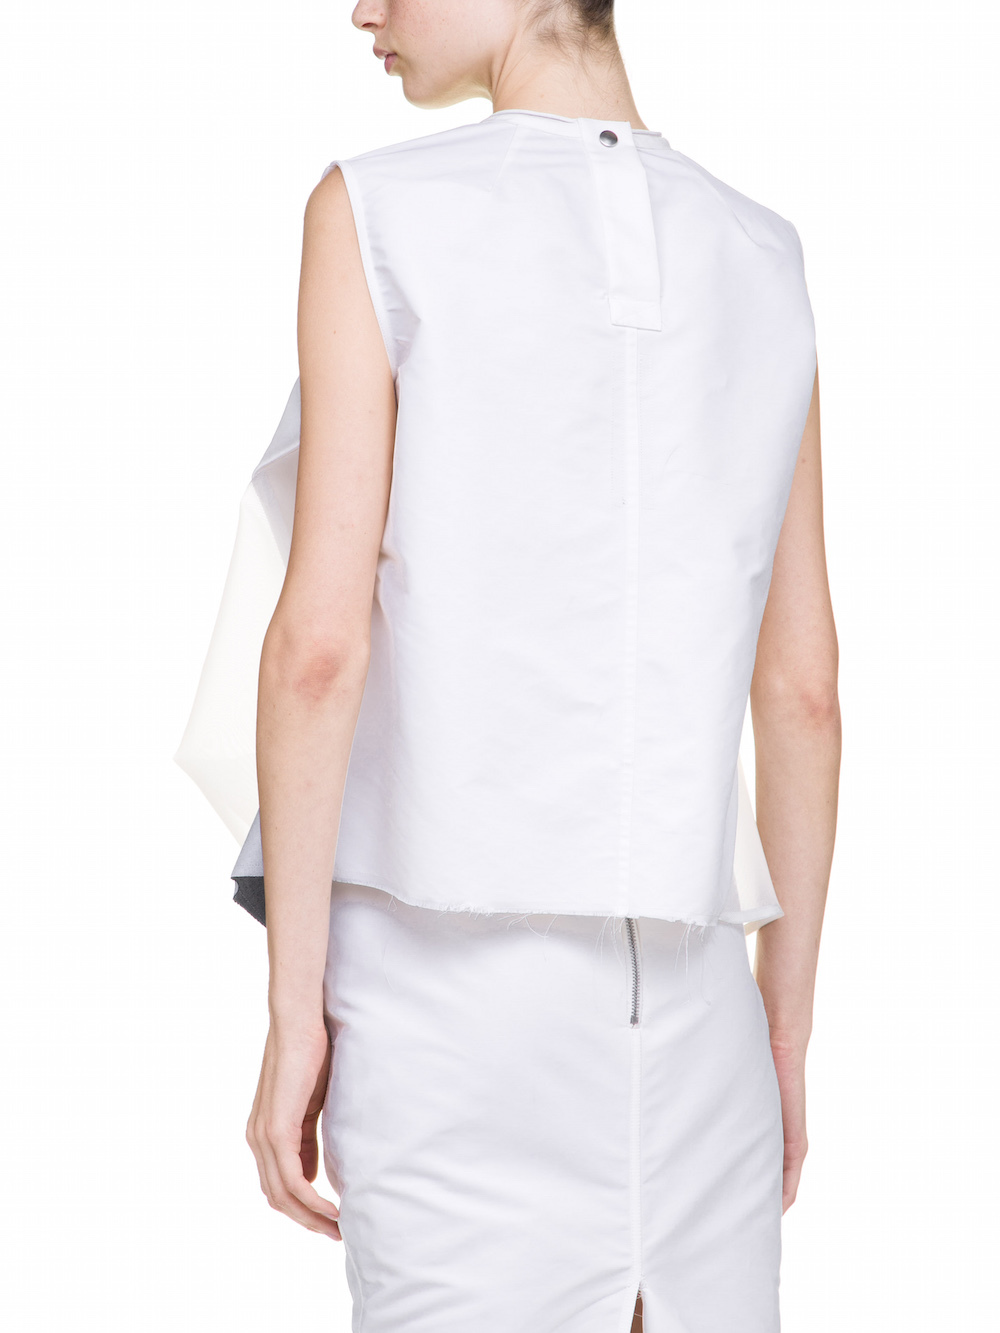 RICK OWENS INHUMAN TOP IN CHALK WHITE IS SLEEVELESS